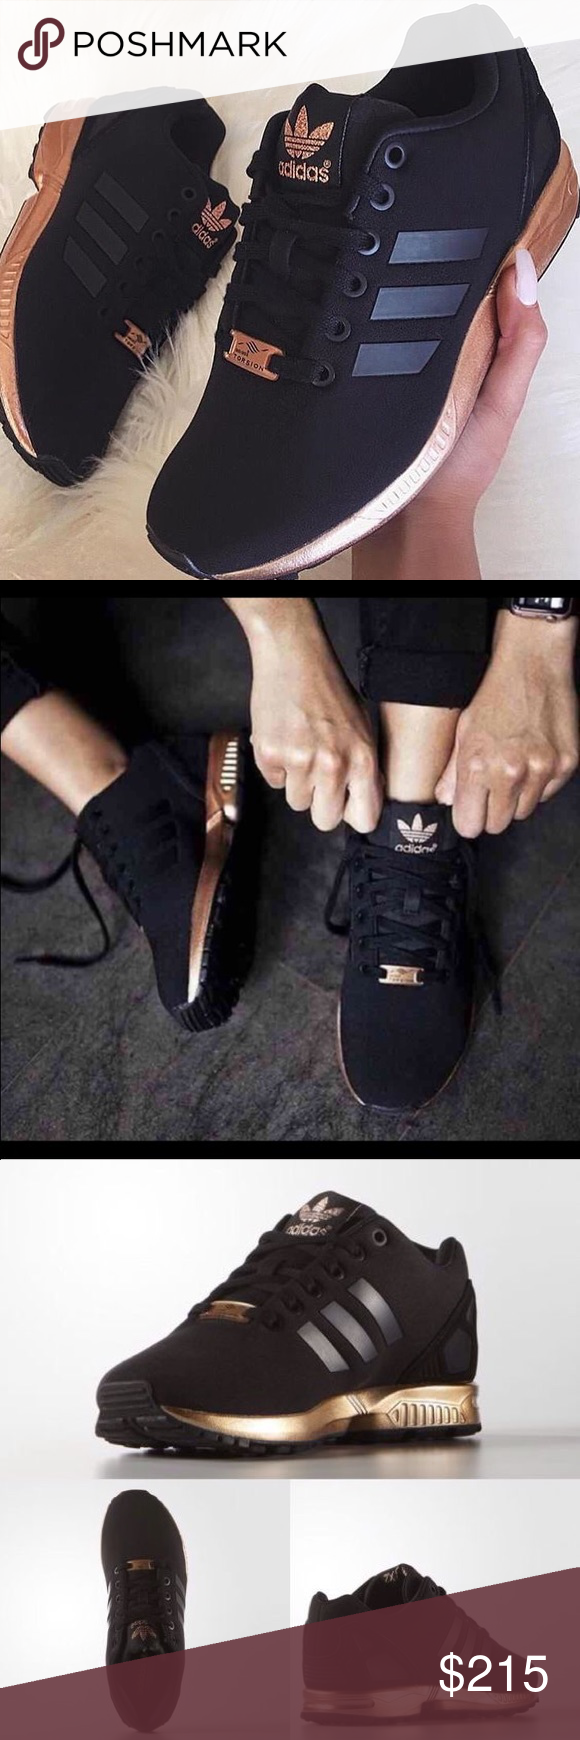 adidas rose gold limited edition